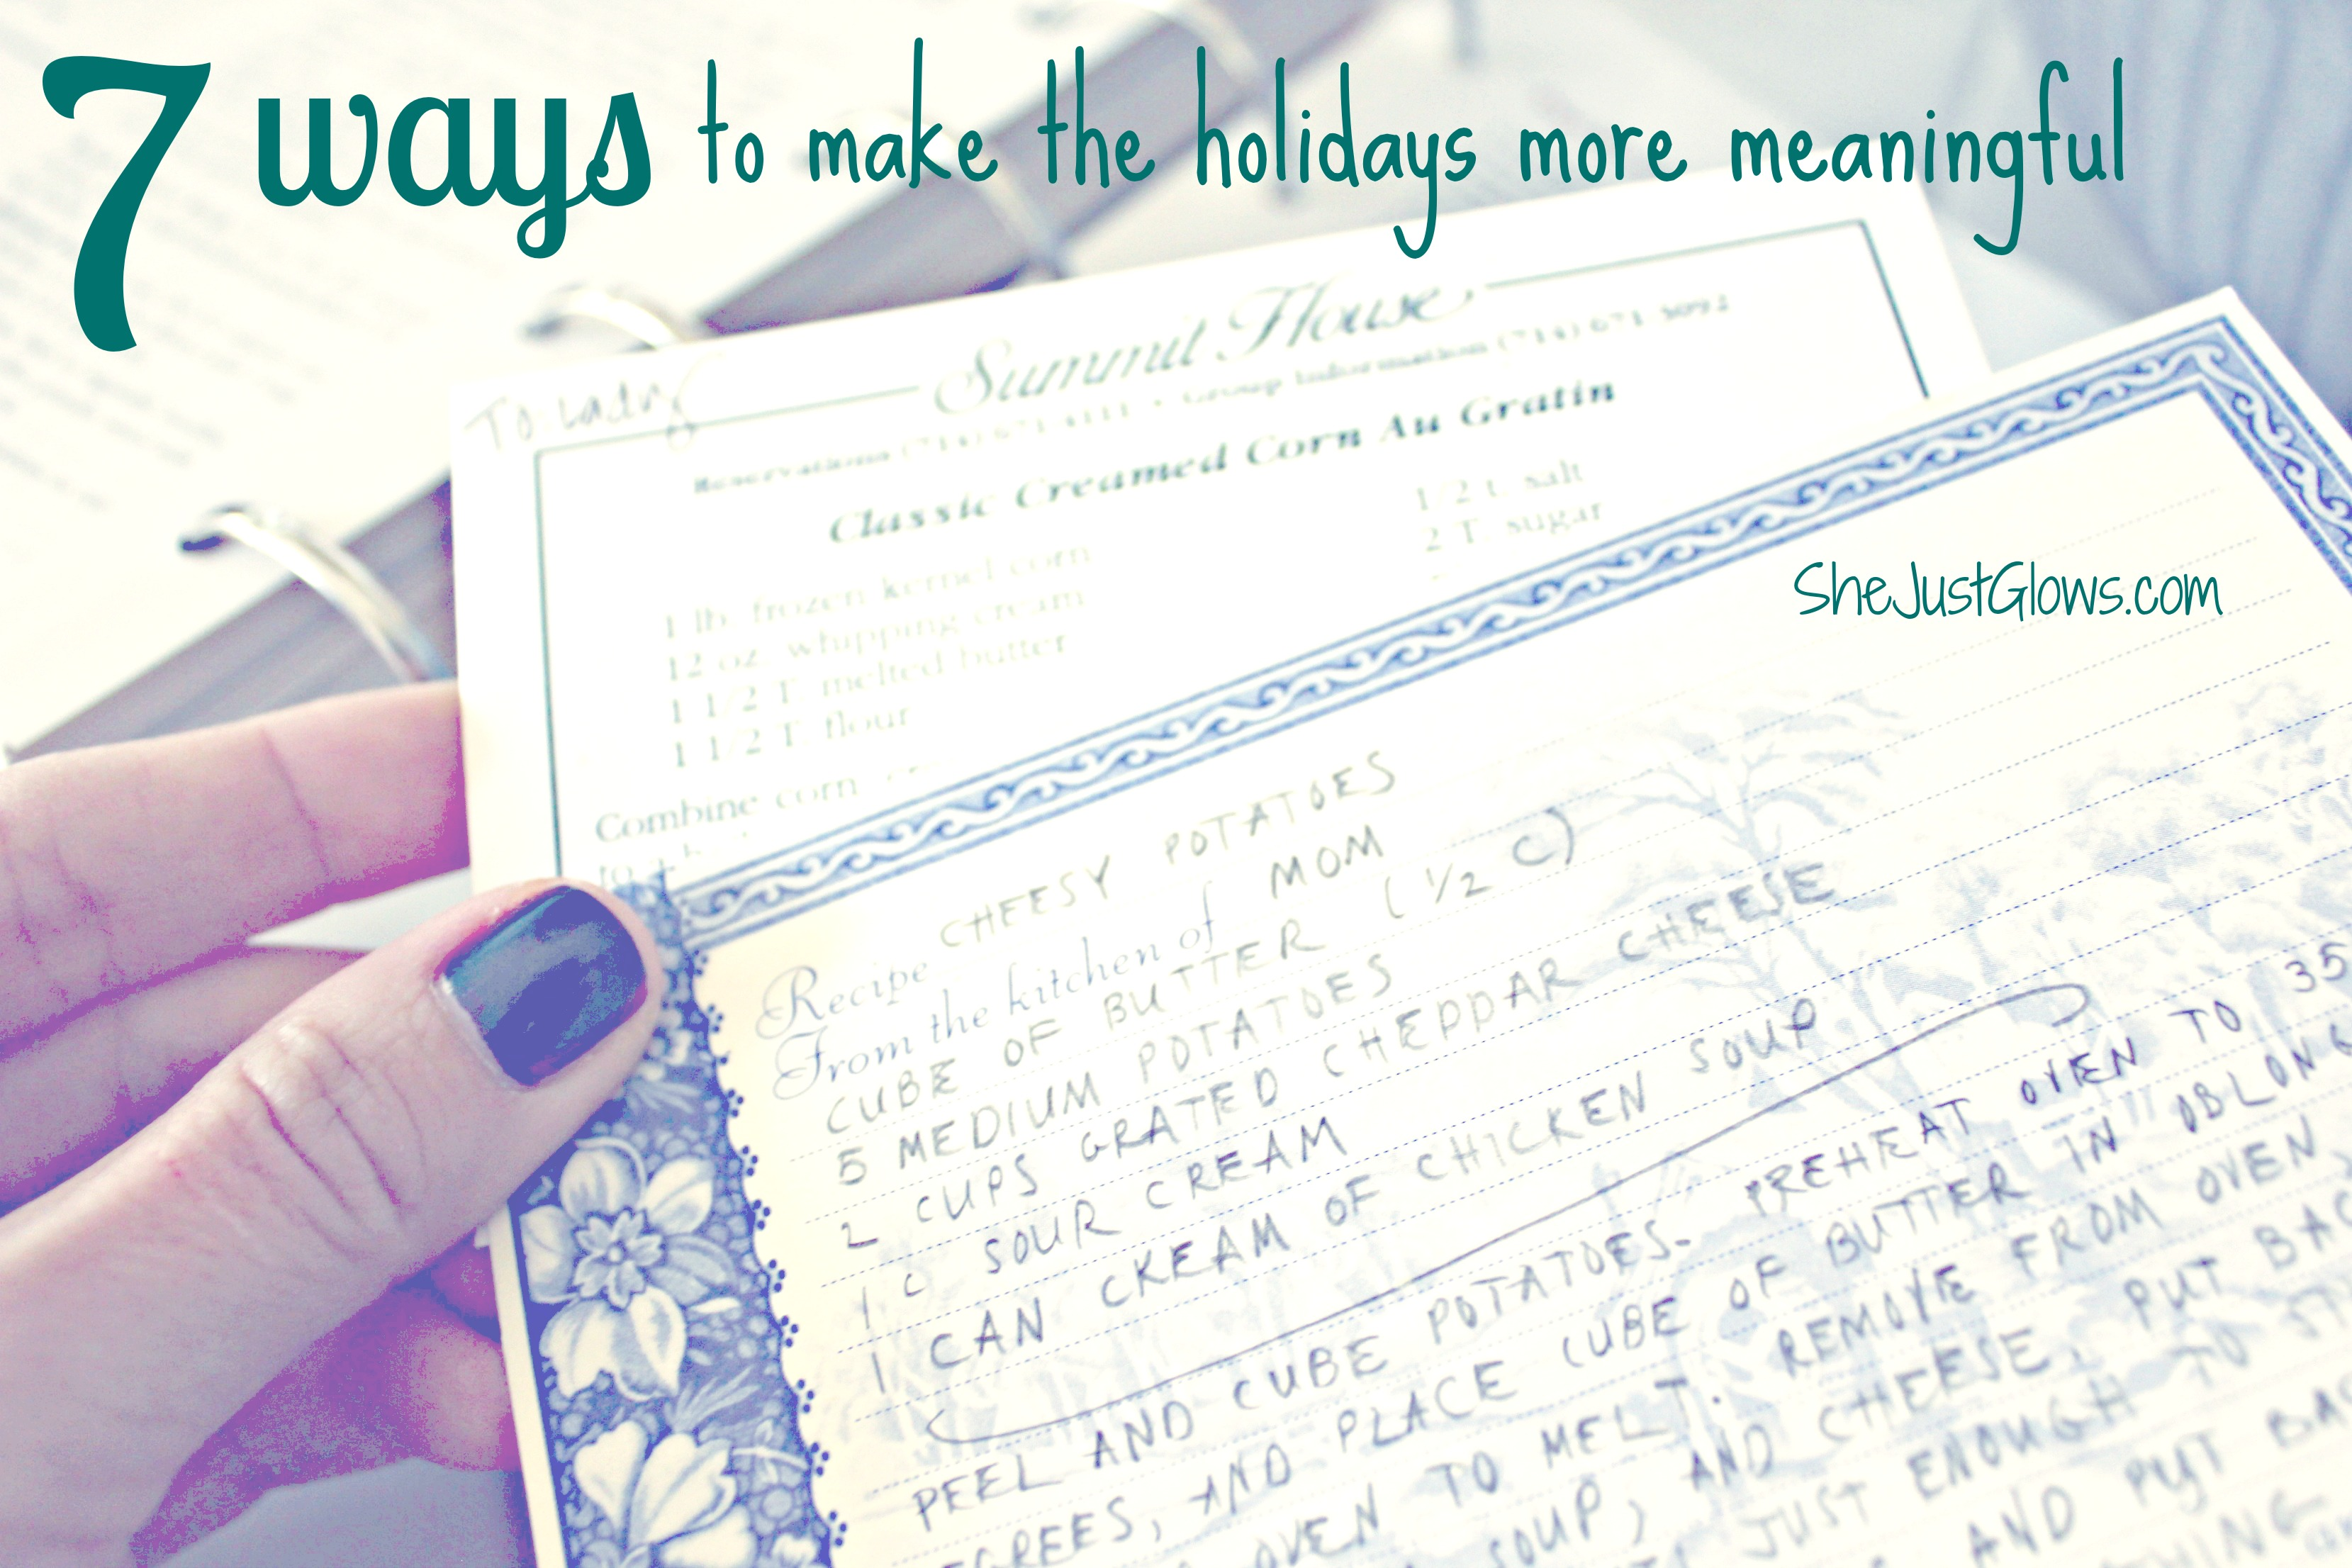 7 Ways to Make the Holidays More Meaningful SheJustGlows.com